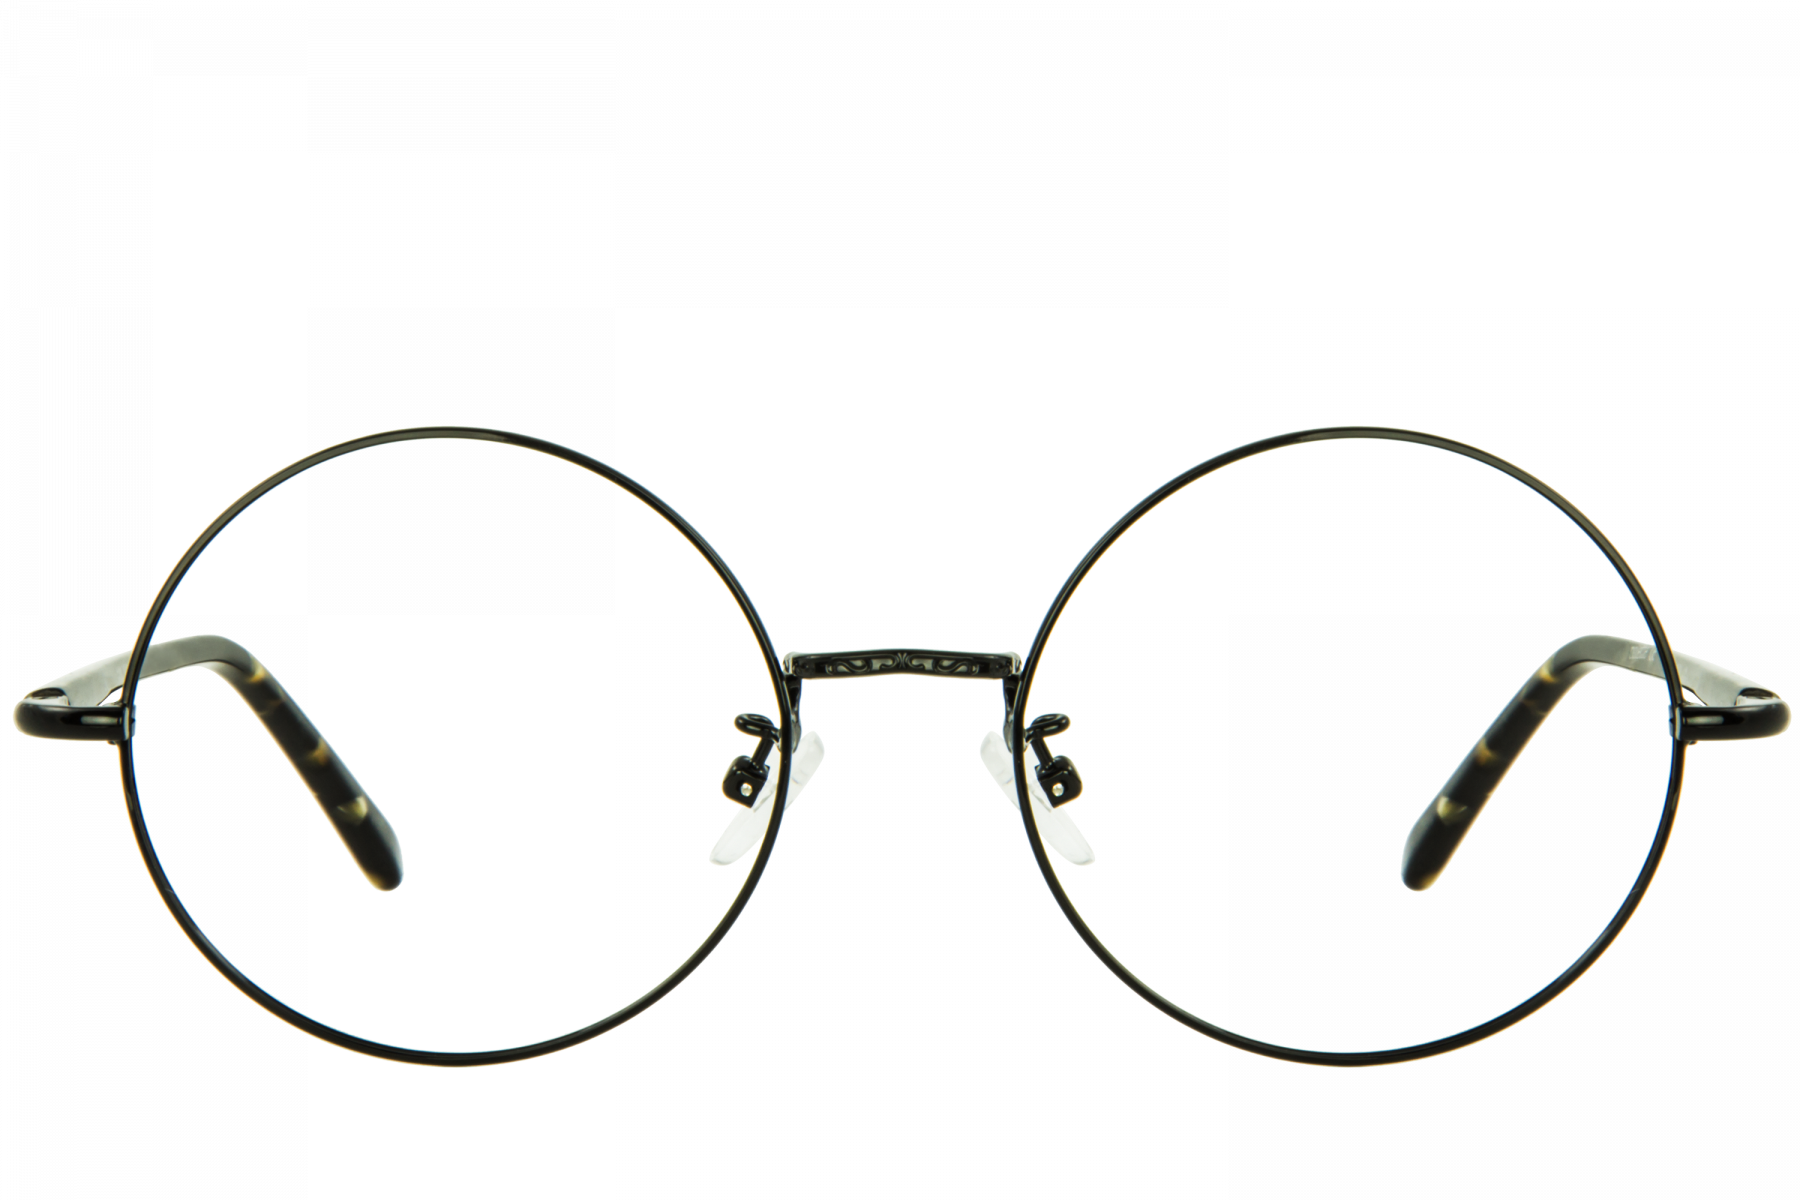 Sunglasses clipart circular. Glasses png images free